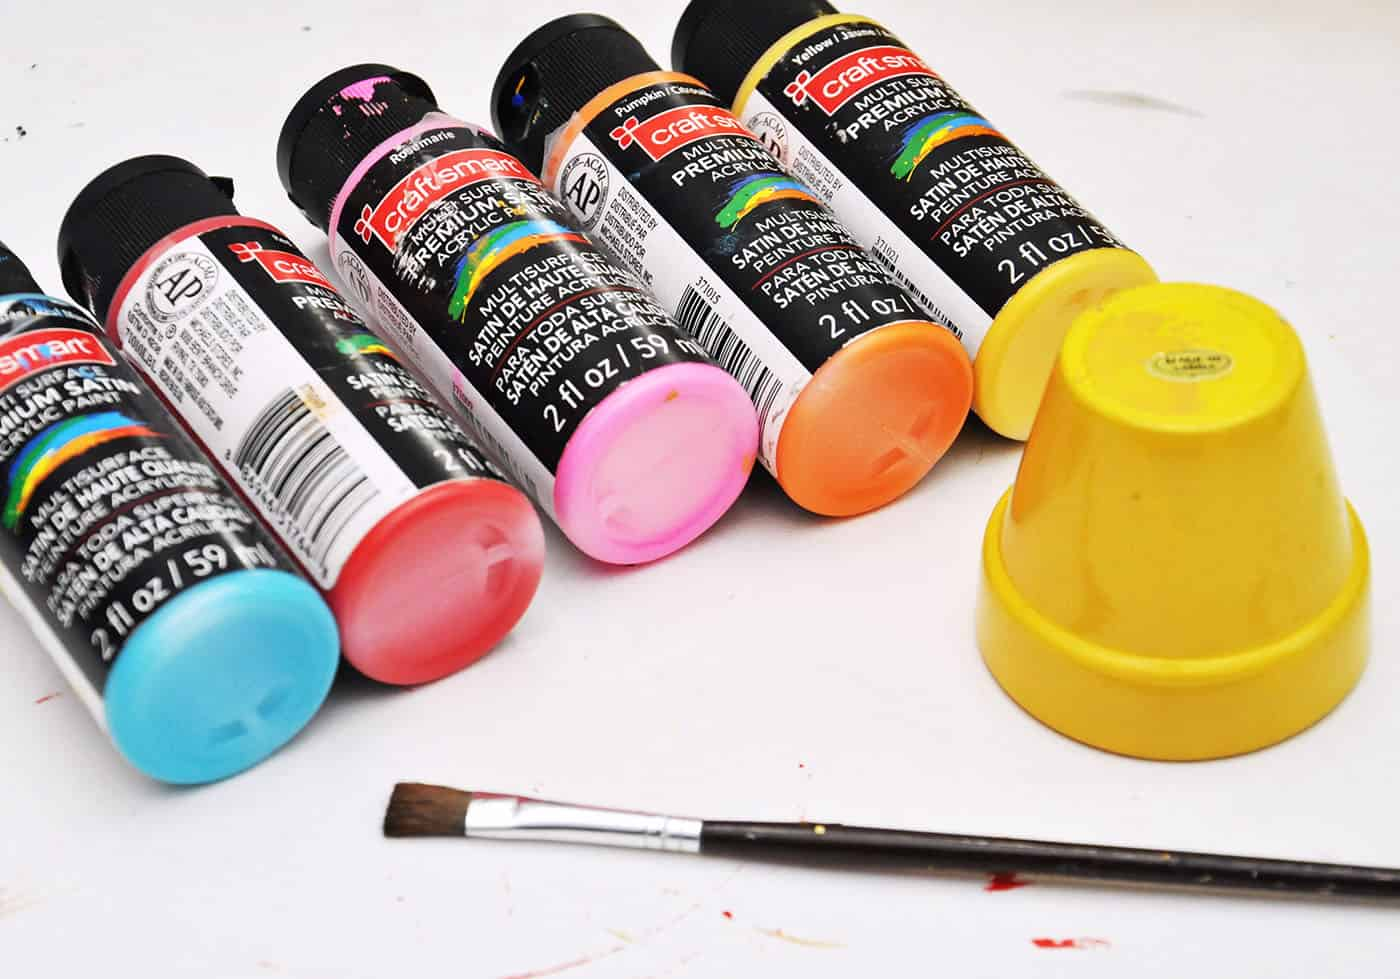 Various colors of craftsmart paint with a yellow painted flower pot